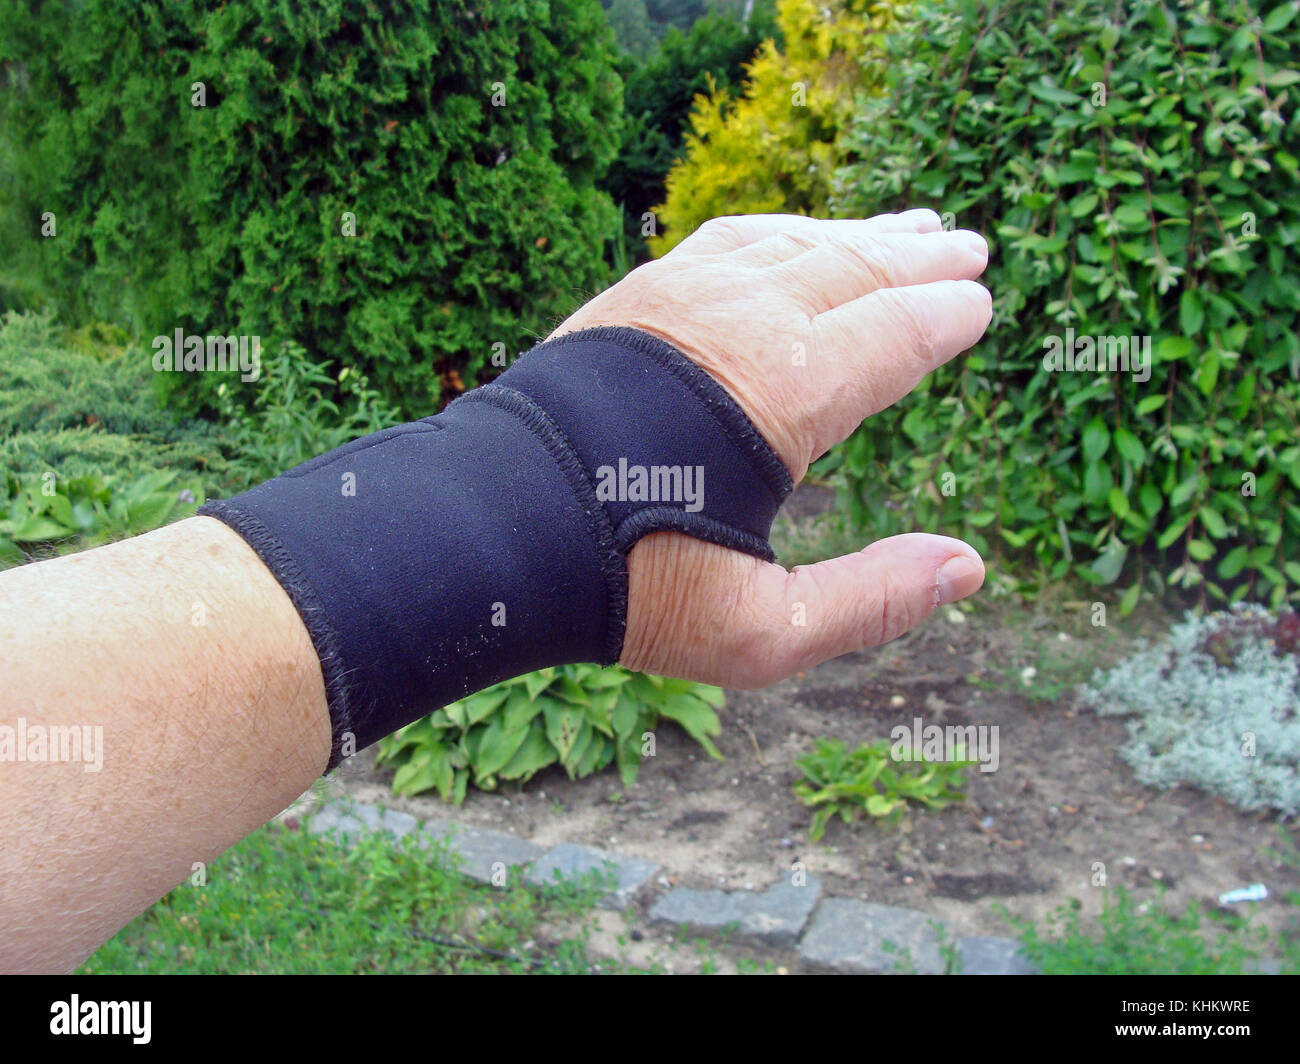 Hand With Black Color Elastic Bandage On Wrist Joint Close Up